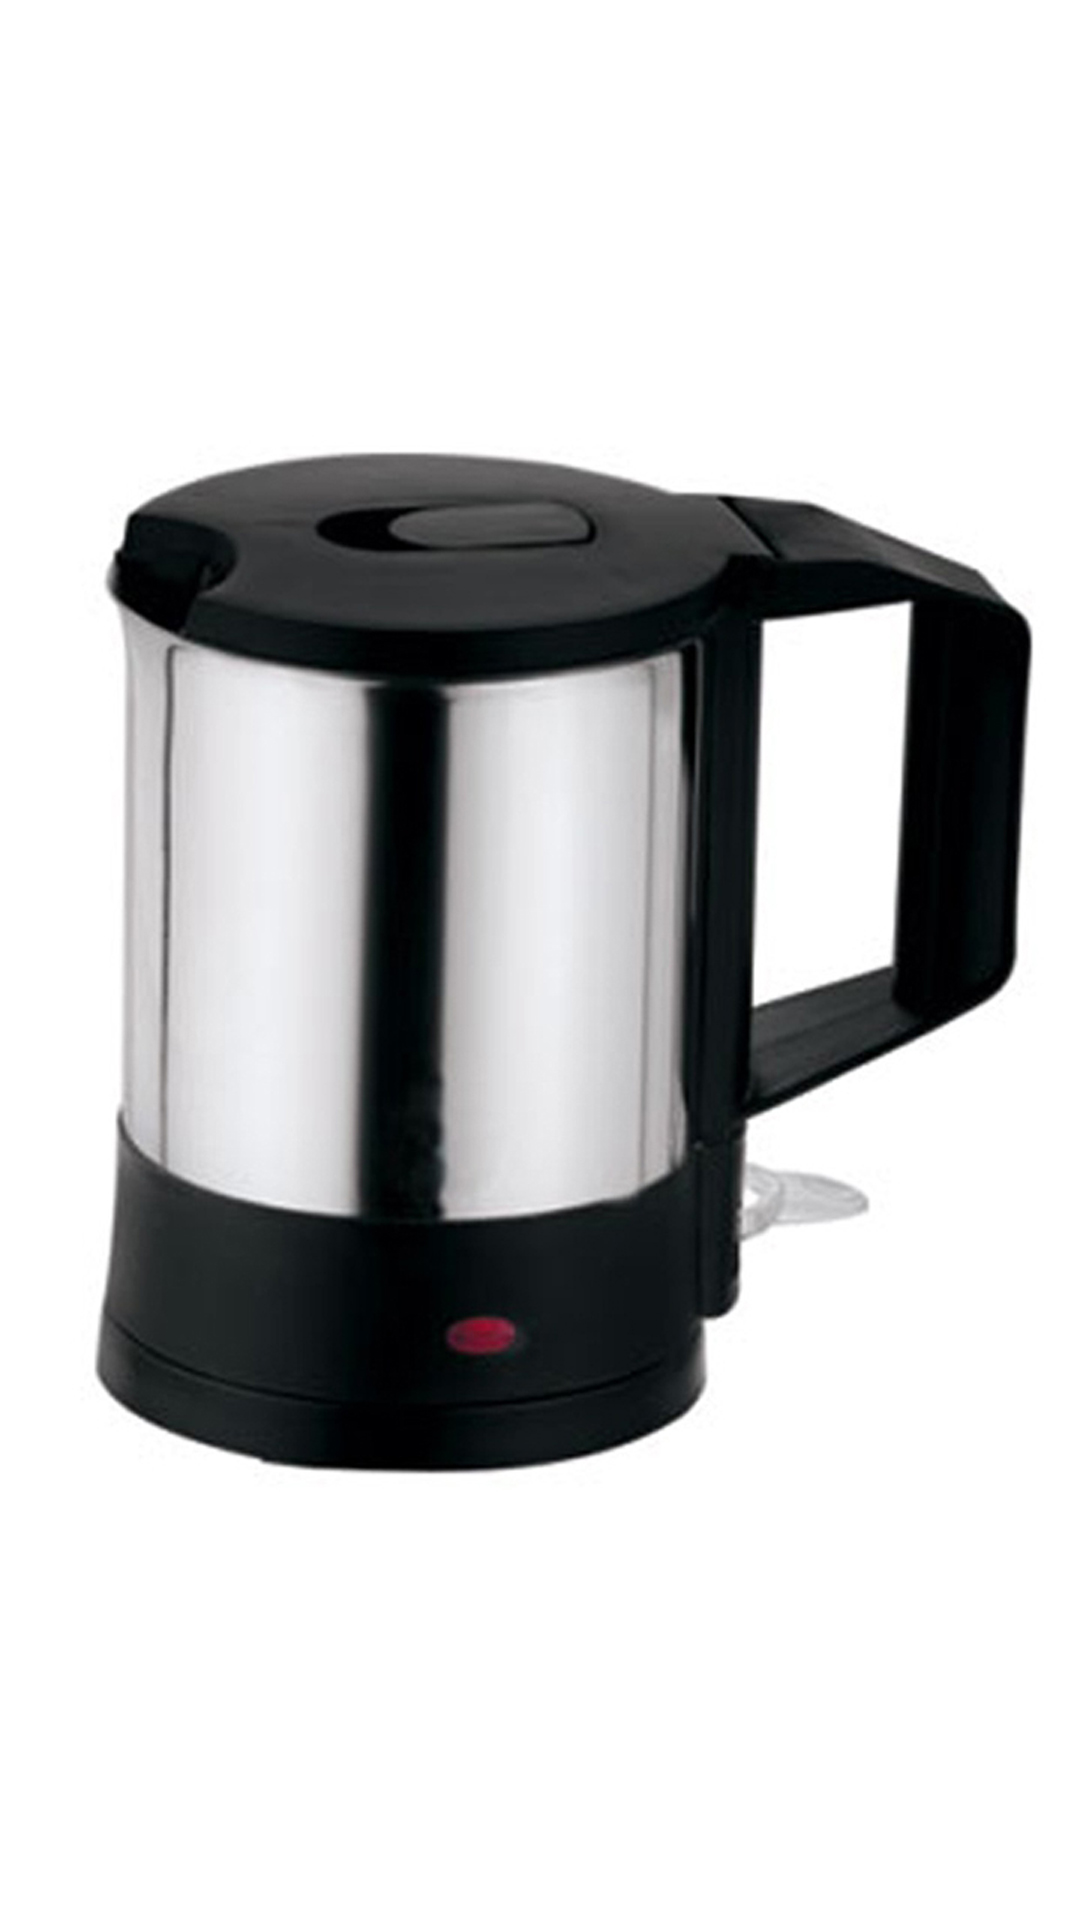 Apex Stainless Steel 1 Litre Electric Kettle